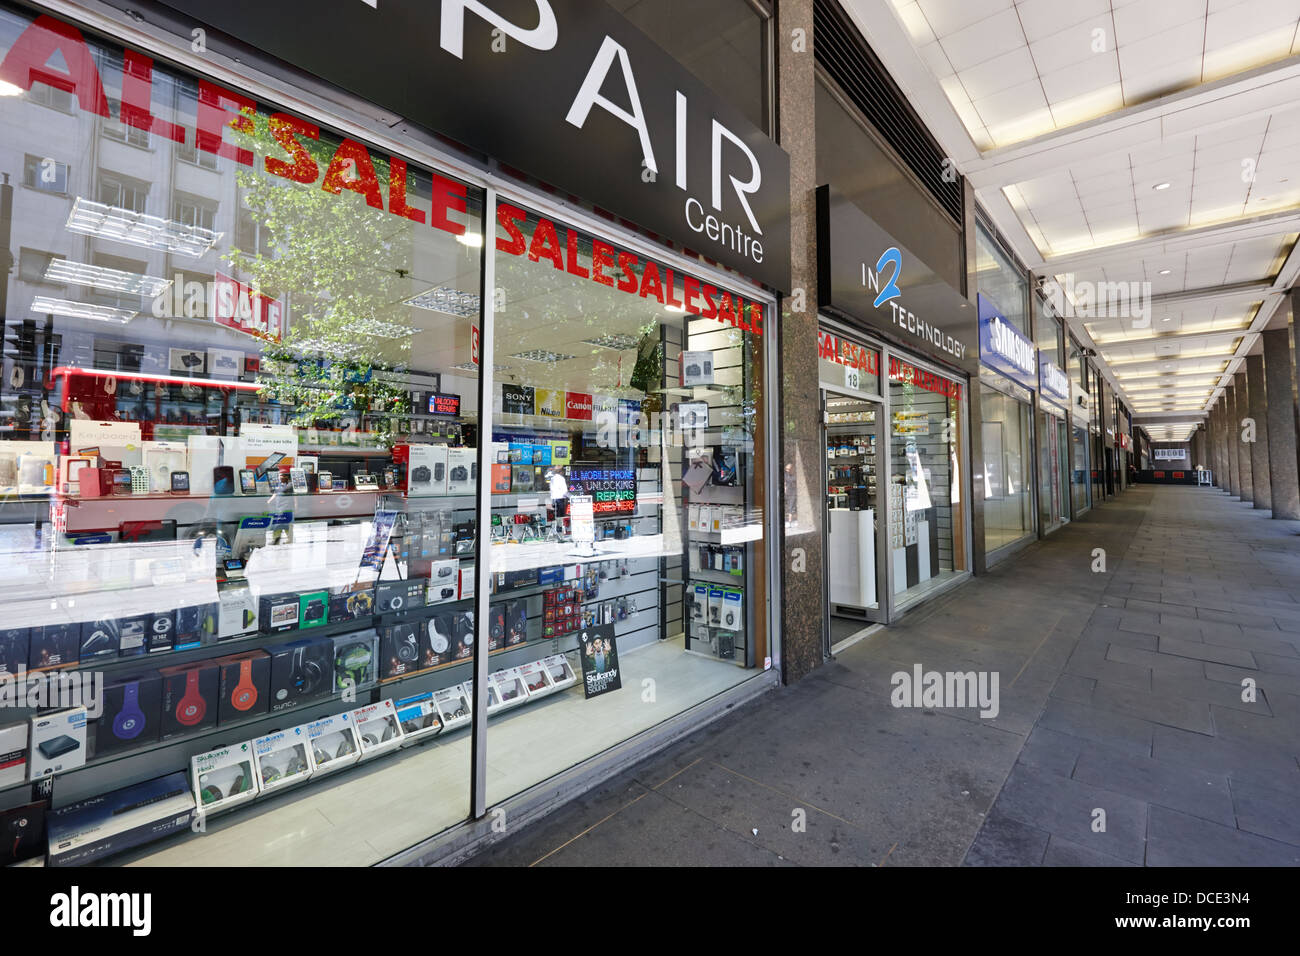 tottenham court road electronics goods shops London England UK - Stock Image